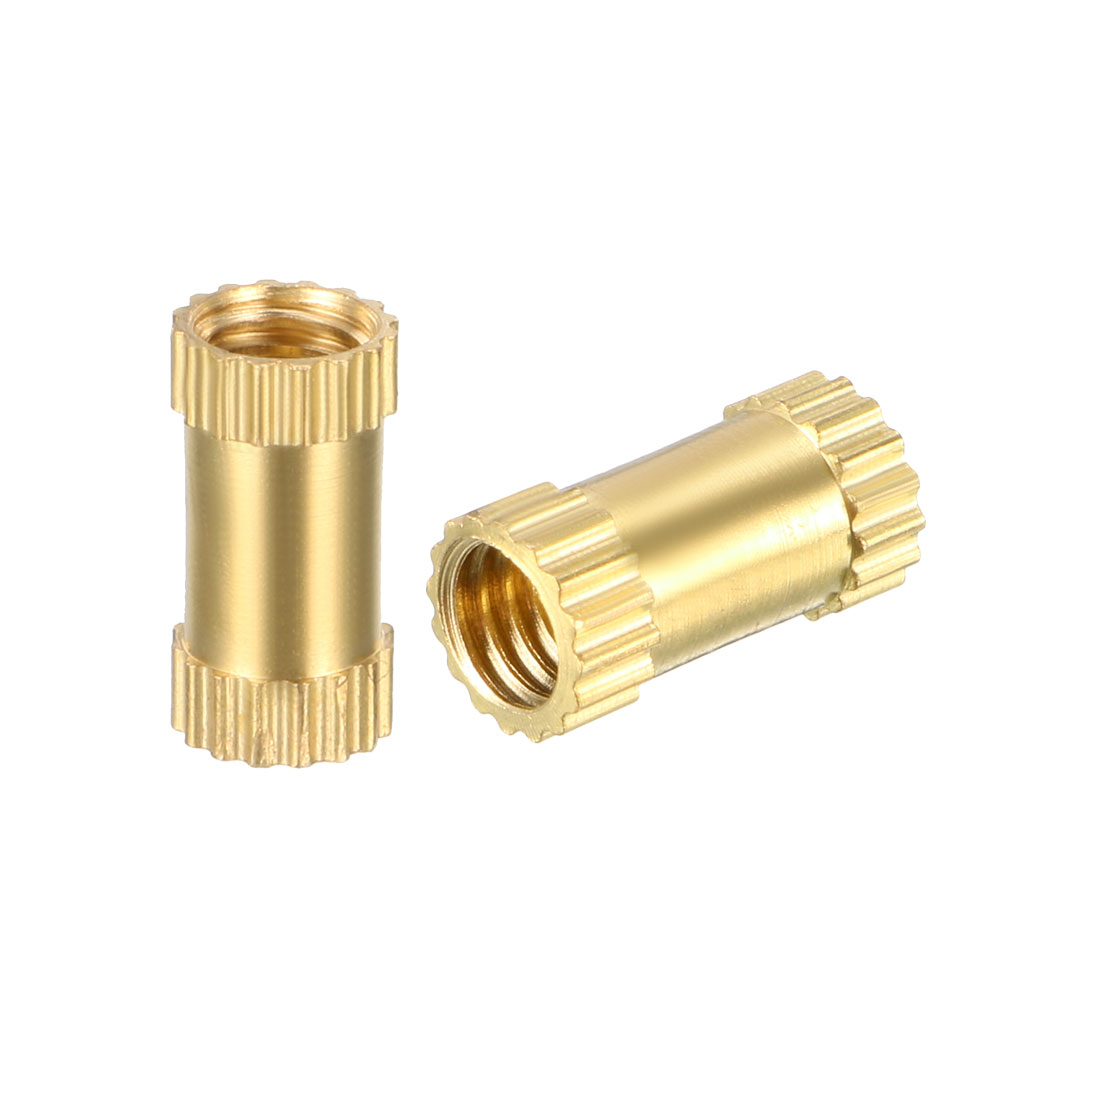 M4 x 10mm(L) x 5mm(OD) Brass Knurled Threaded Insert Embedment Nuts, 100 Pcs - image 3 de 3